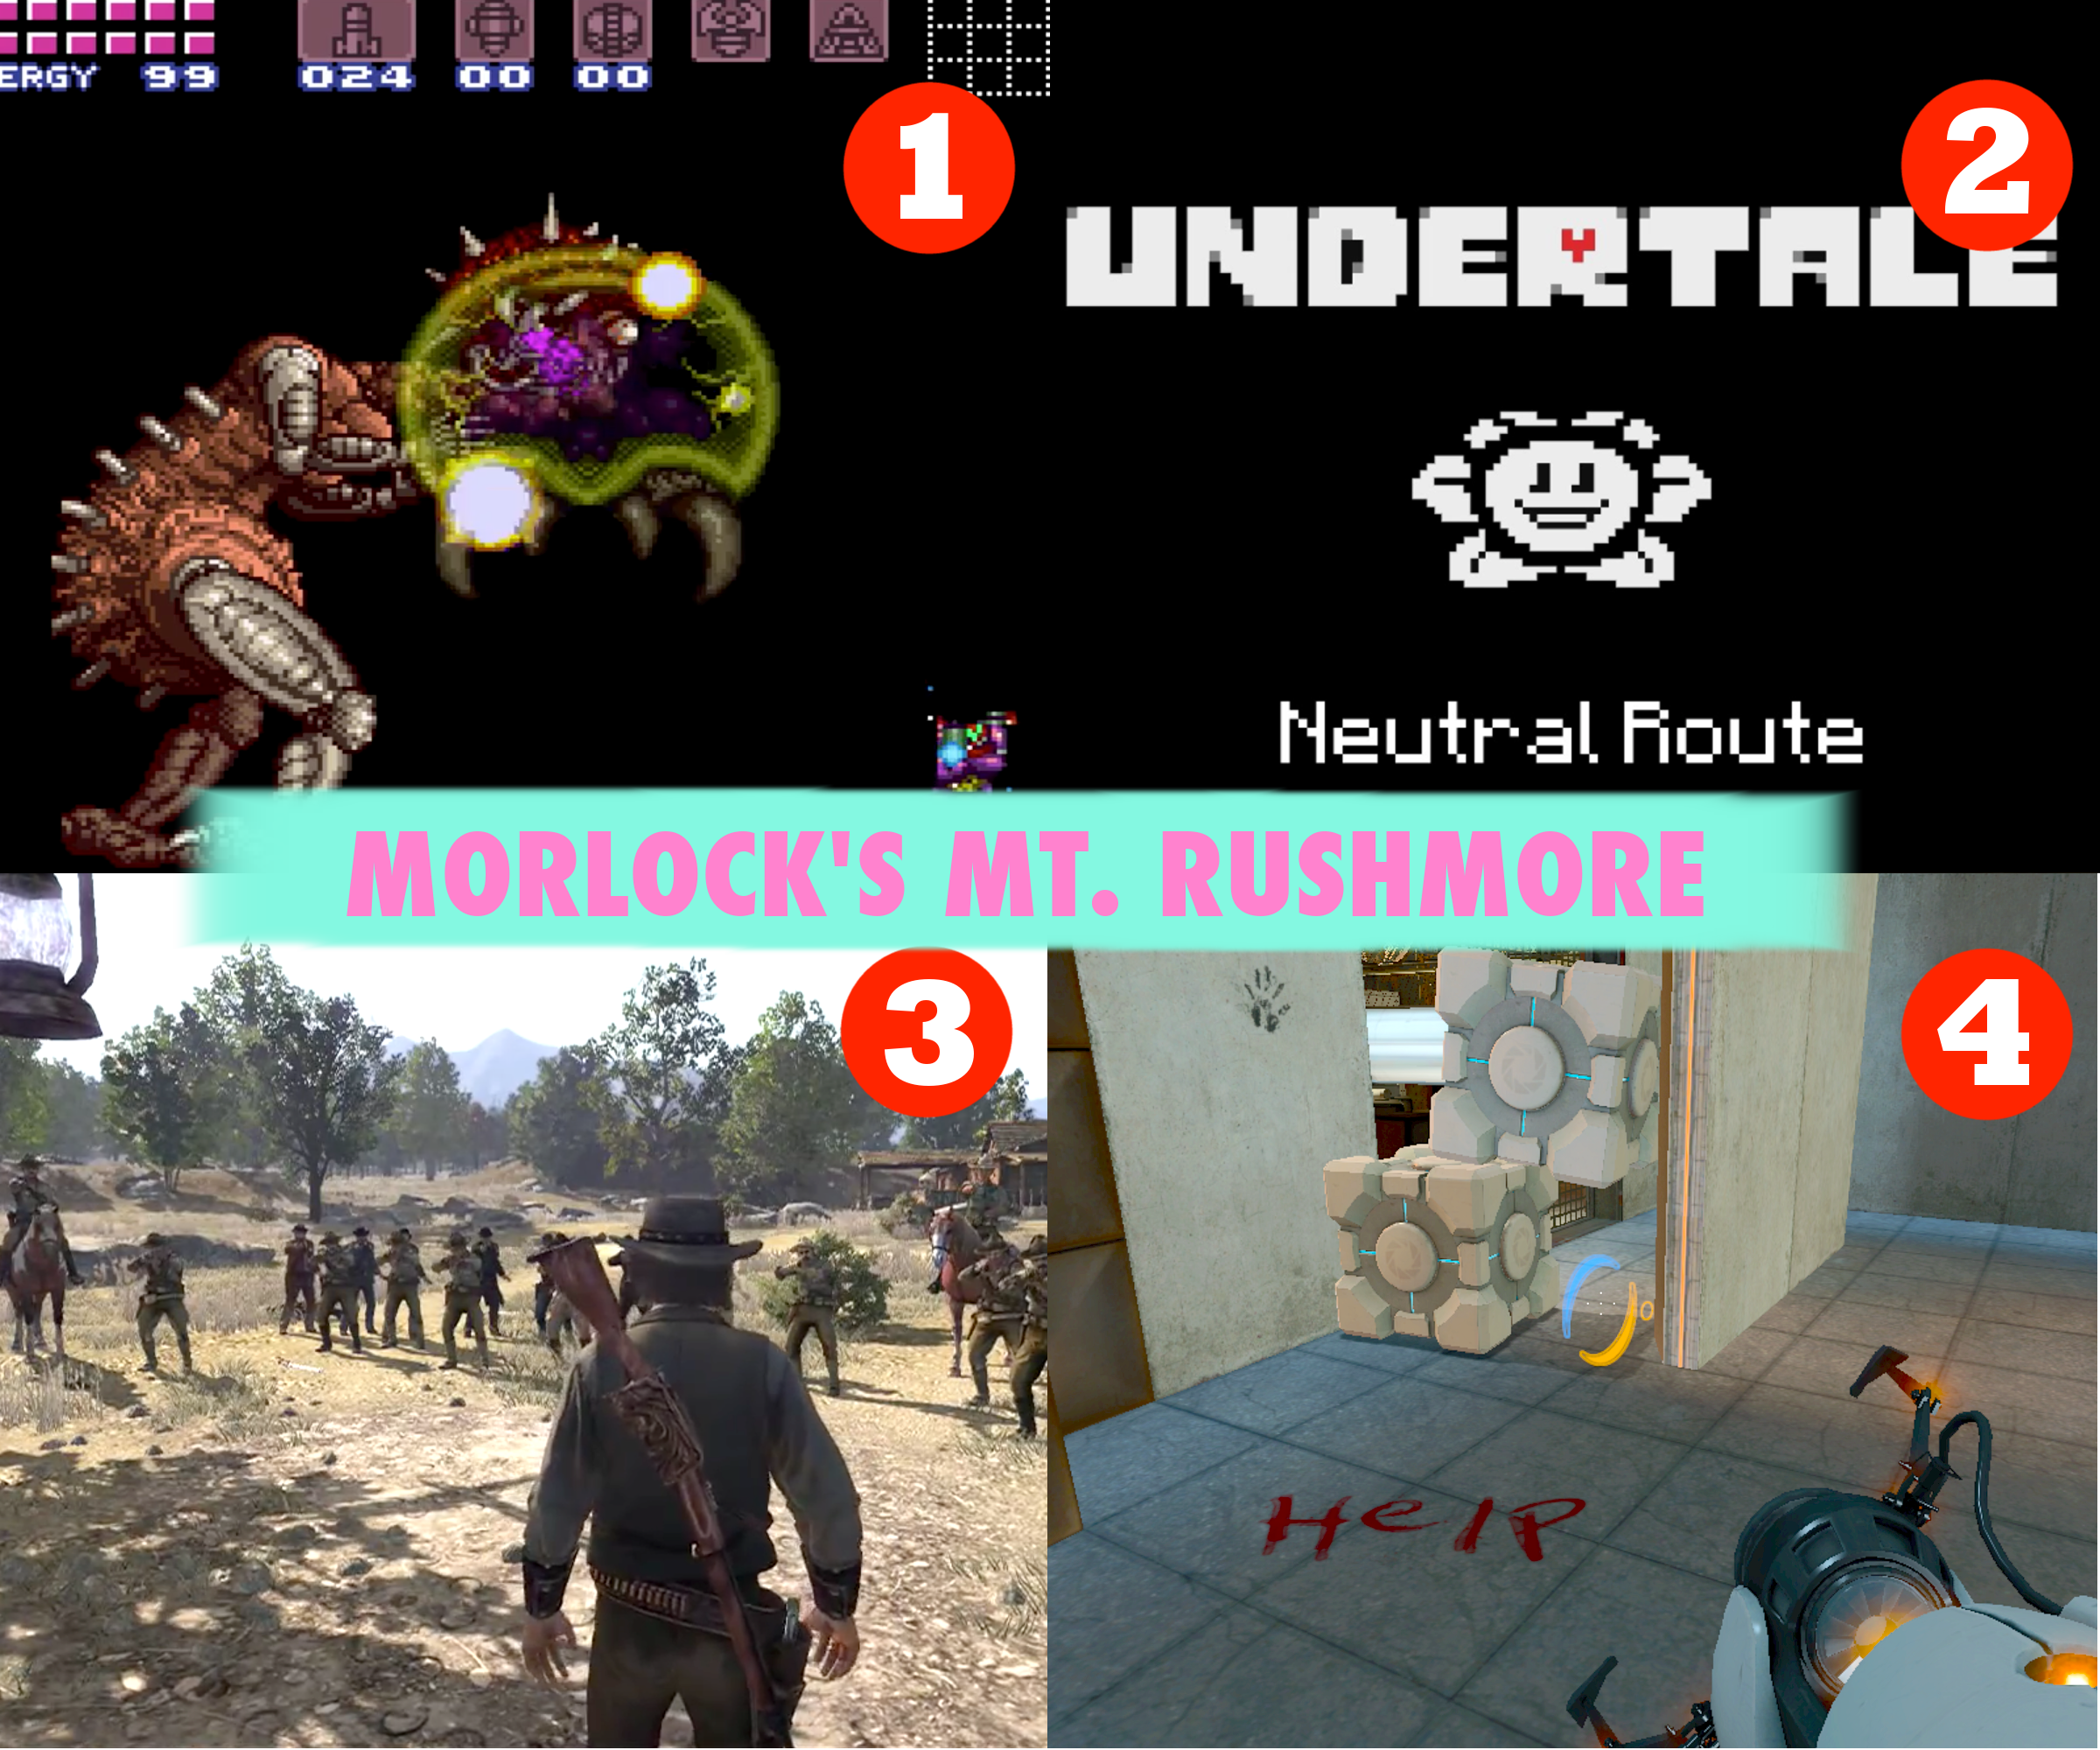 My four favorite moments in video games that I've played.